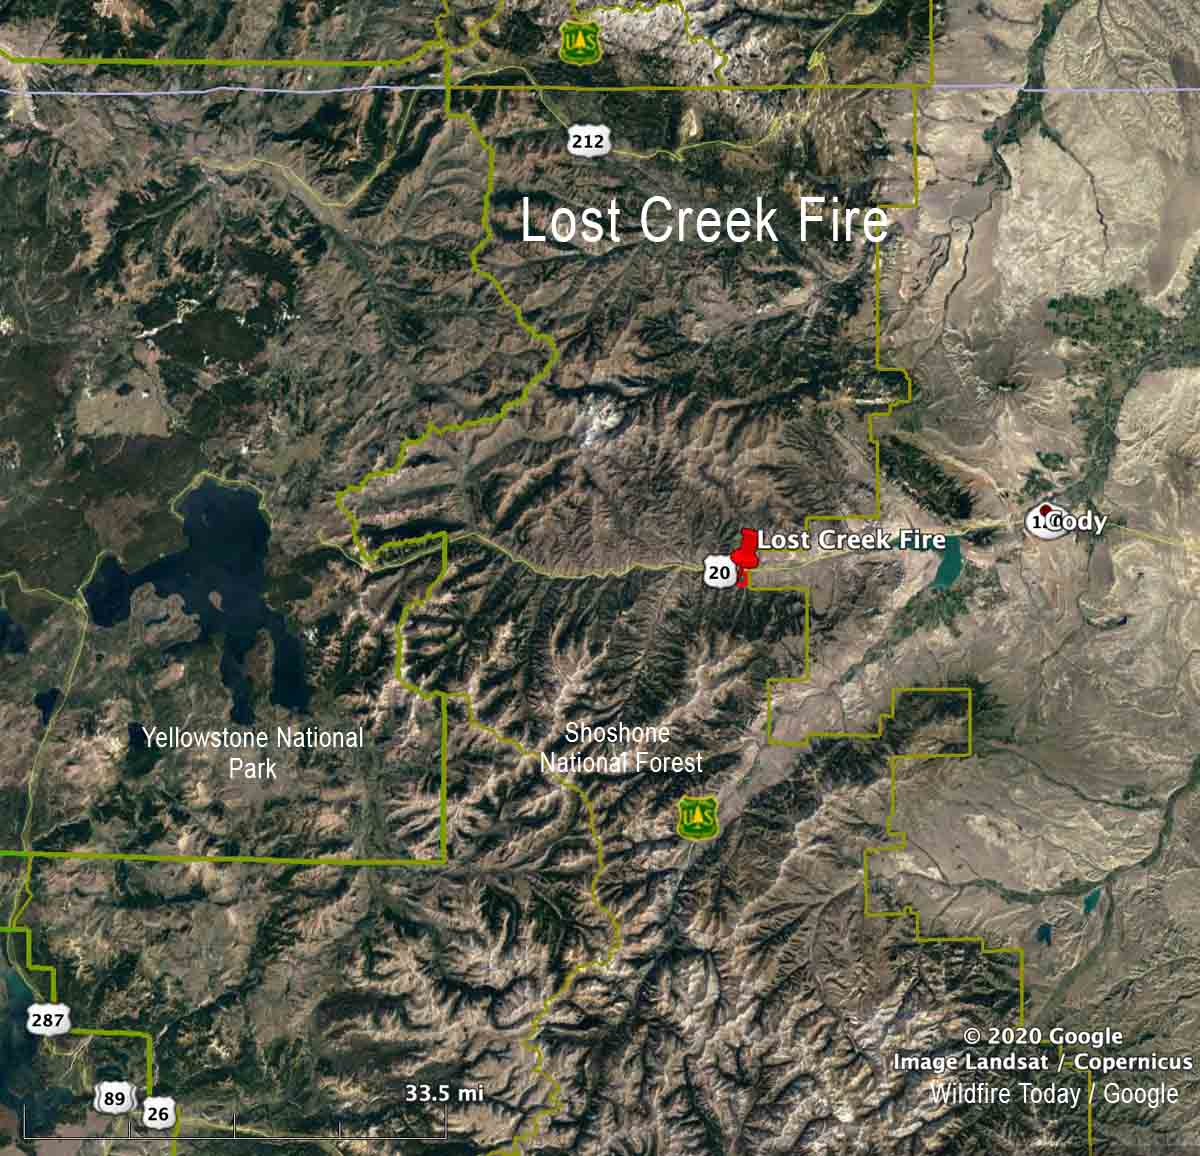 Vicinity map of the Lost Creek Fire